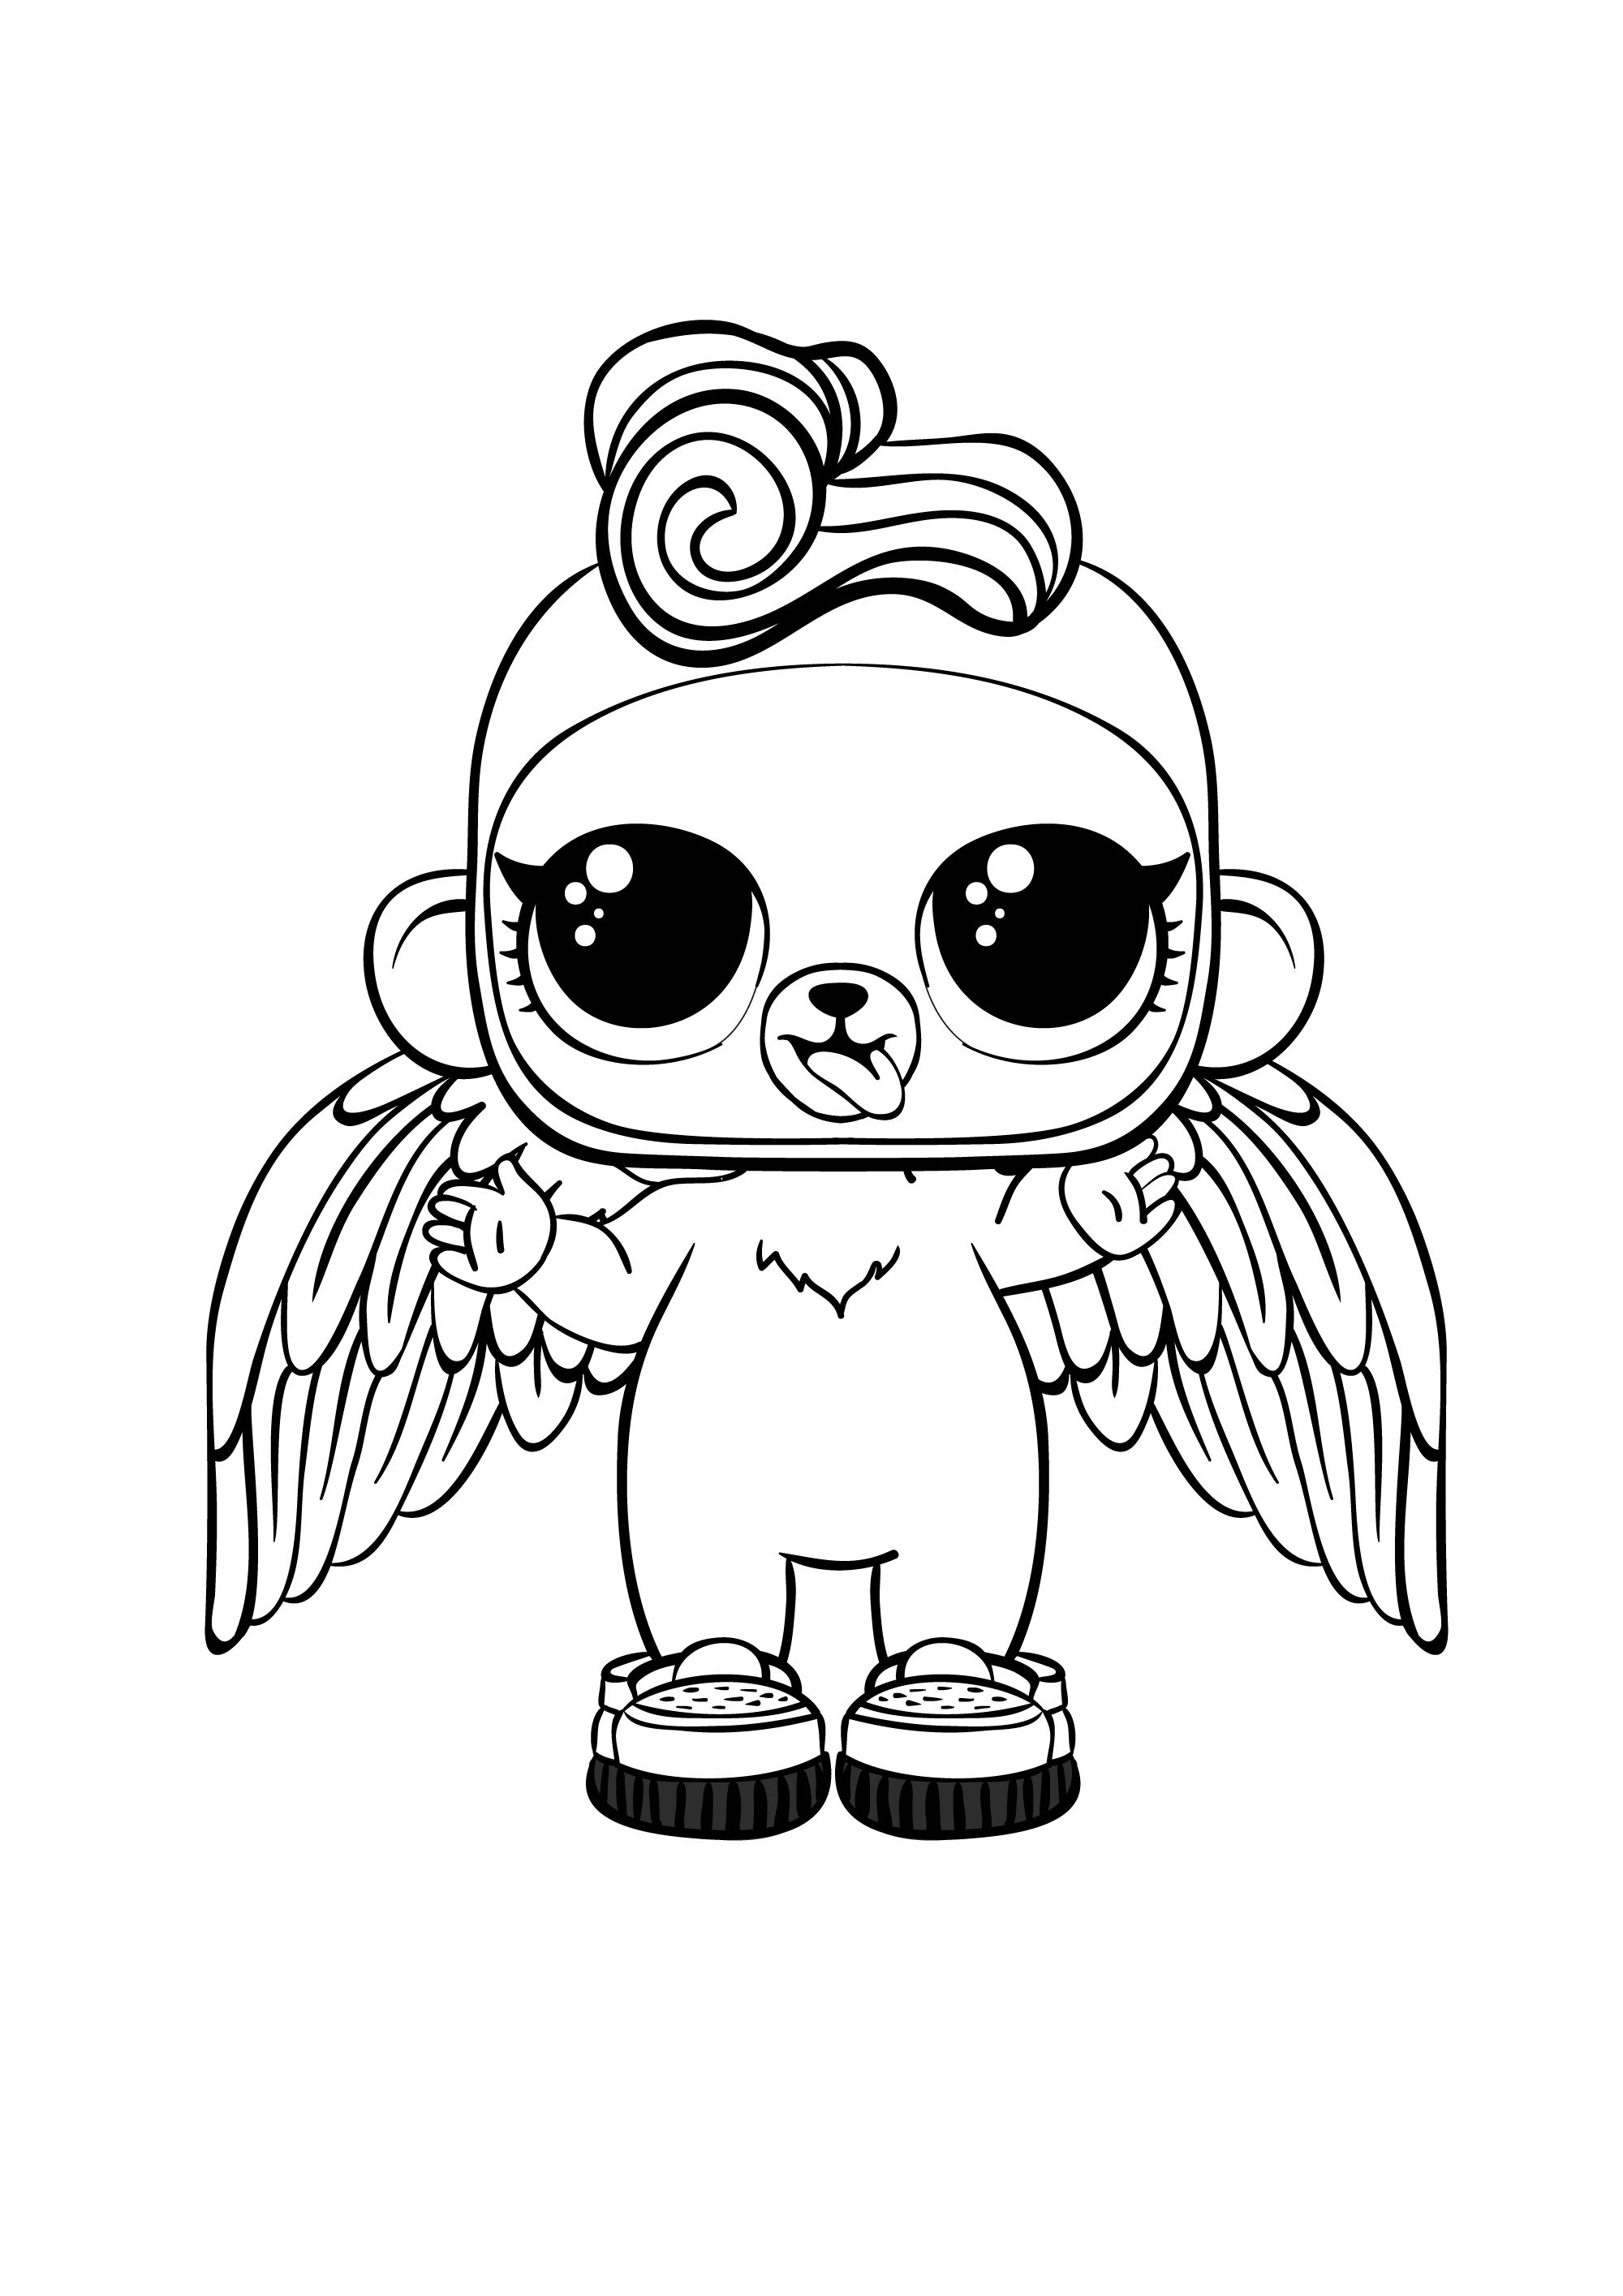 Coloring Pages Lol Surprise Hairgoals And Lol Surprise Boys Lolsdolls Monkey Coloring Pages Cool Coloring Pages Animal Coloring Pages